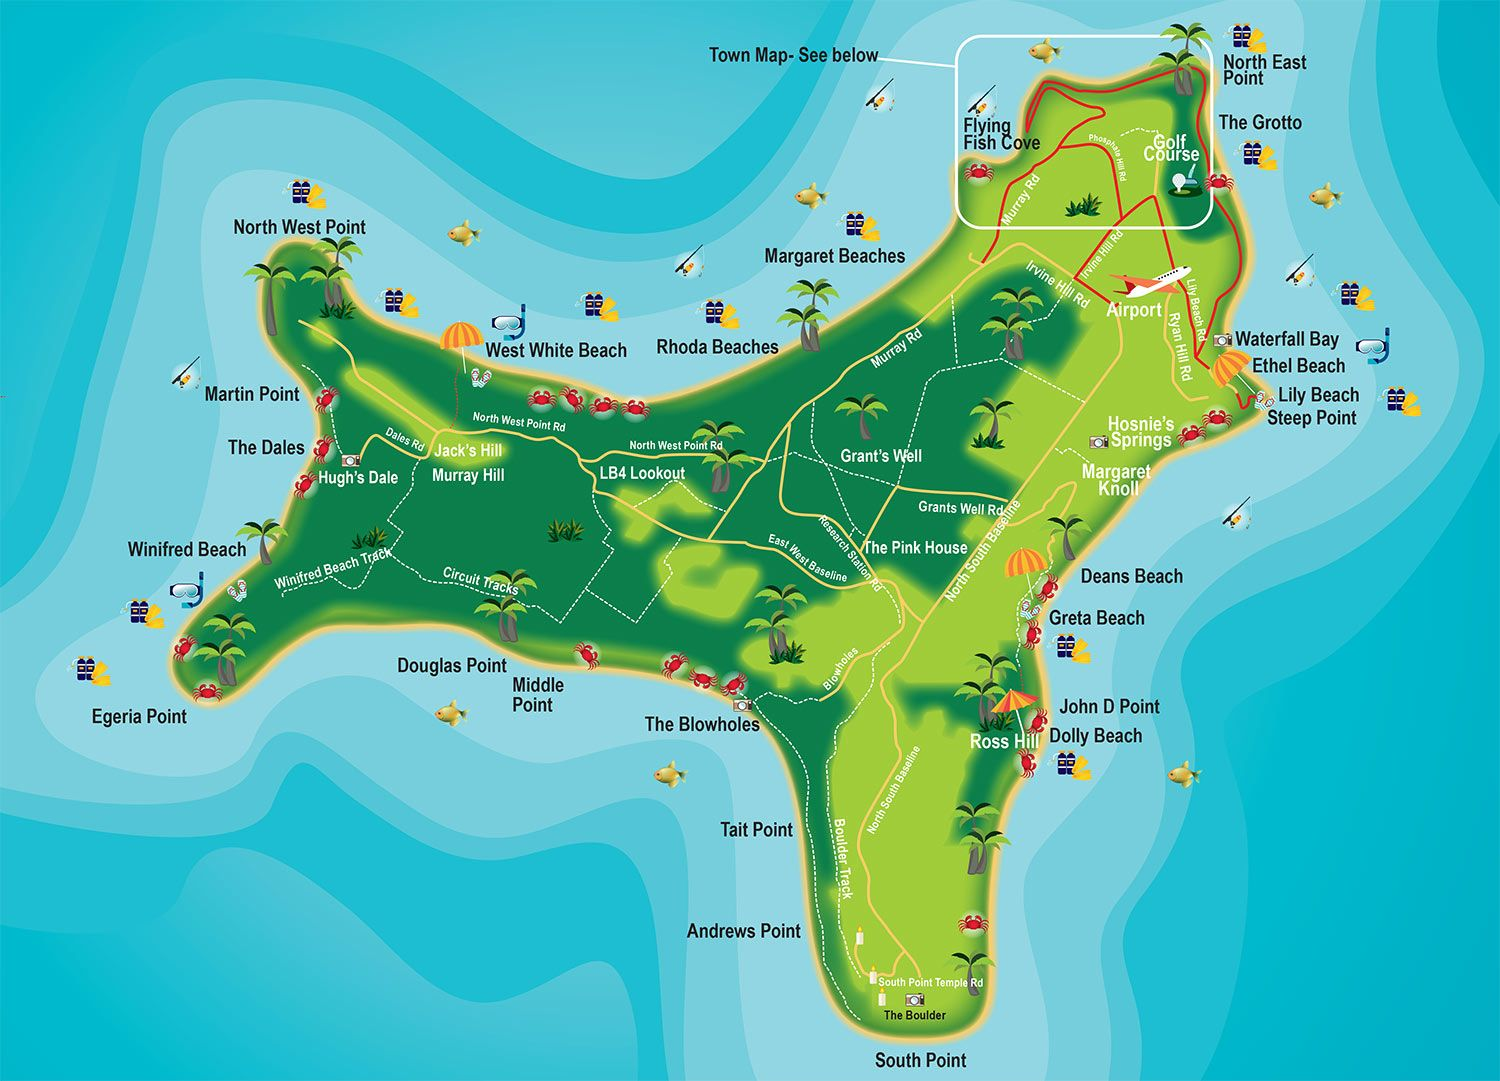 Travel to Christmas Island - A Complete Visitors Guide ... on pitcairn islands, solomon islands, kauai island outline map, antarctica map, easter island map, pitcairn islands map, usa government map, marshall islands, asia map, fiji map, solomon islands map, cayman islands, northern mariana islands, cocos islands, south georgia and the south sandwich islands, faroe islands, pacific isles map, australia map, mcdonald islands map, islands of kiribati map, indian ocean, new caledonia, pacific ocean map, macau map, united states minor outlying islands map, southeast asia, cook islands, turks and caicos islands, maldives map, galápagos islands map, nauru map, sunset island ocean city maryland map, norfolk island, pacific islands map,